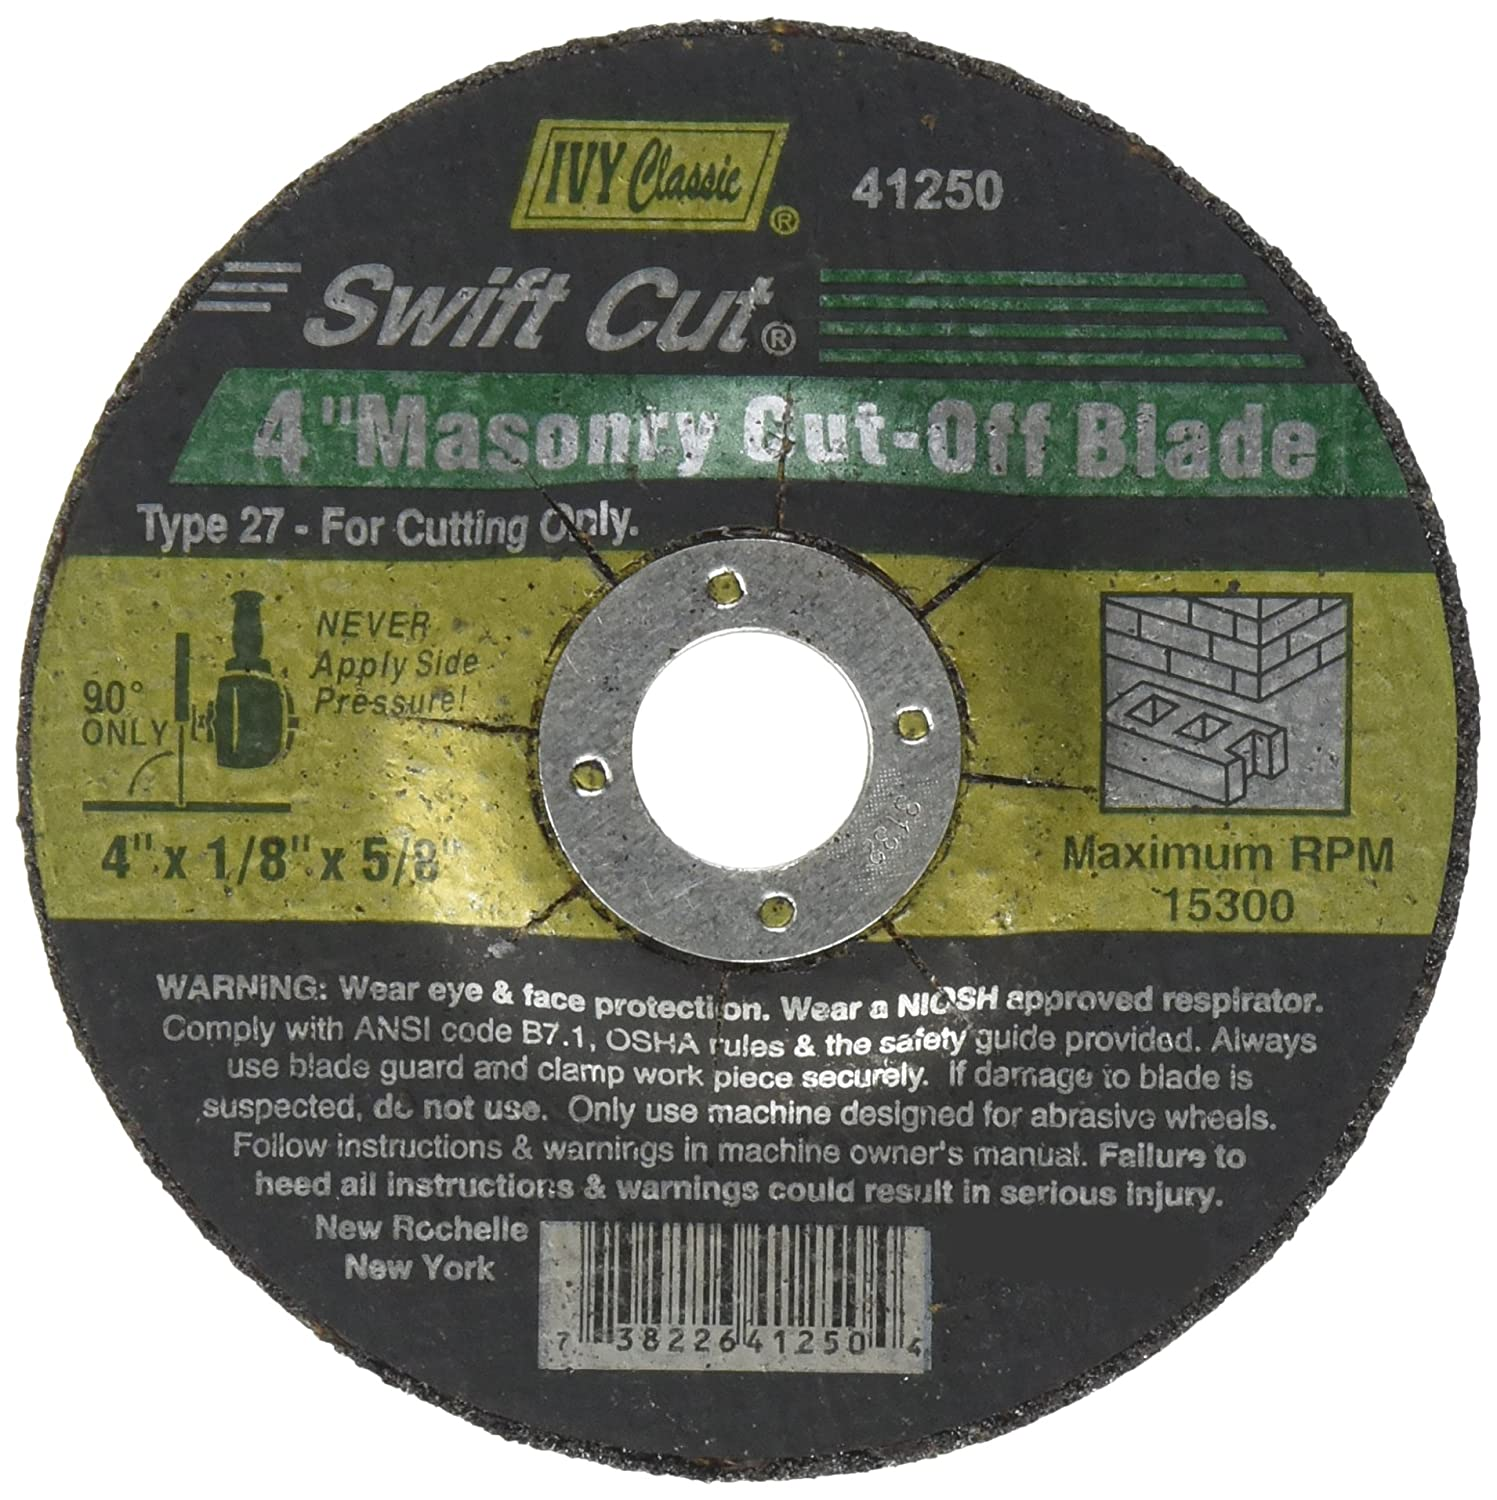 1-Piece Ivy Classic Industries IVY Classic 41250 Swift Cut 4-Inch x 1//8-Inch x 5//8-Inch Arbor Masonry Depressed Center Wheel for Grinders